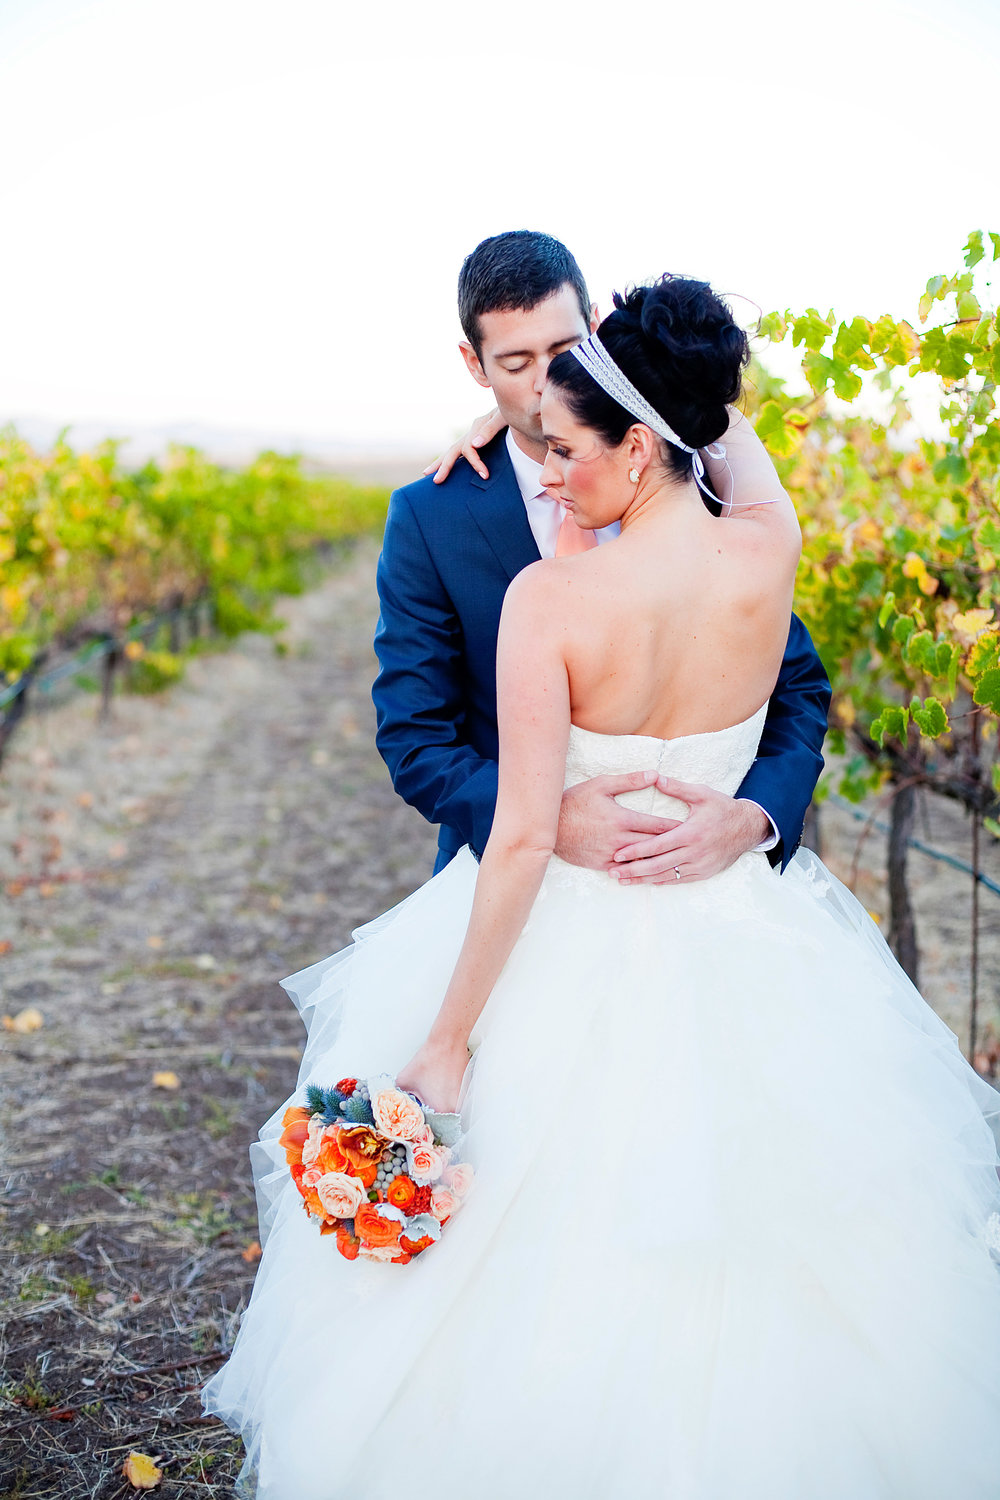 Best-Napa-Valley-Wedding-Venues-Jacuzzi-Sonoma.jpg